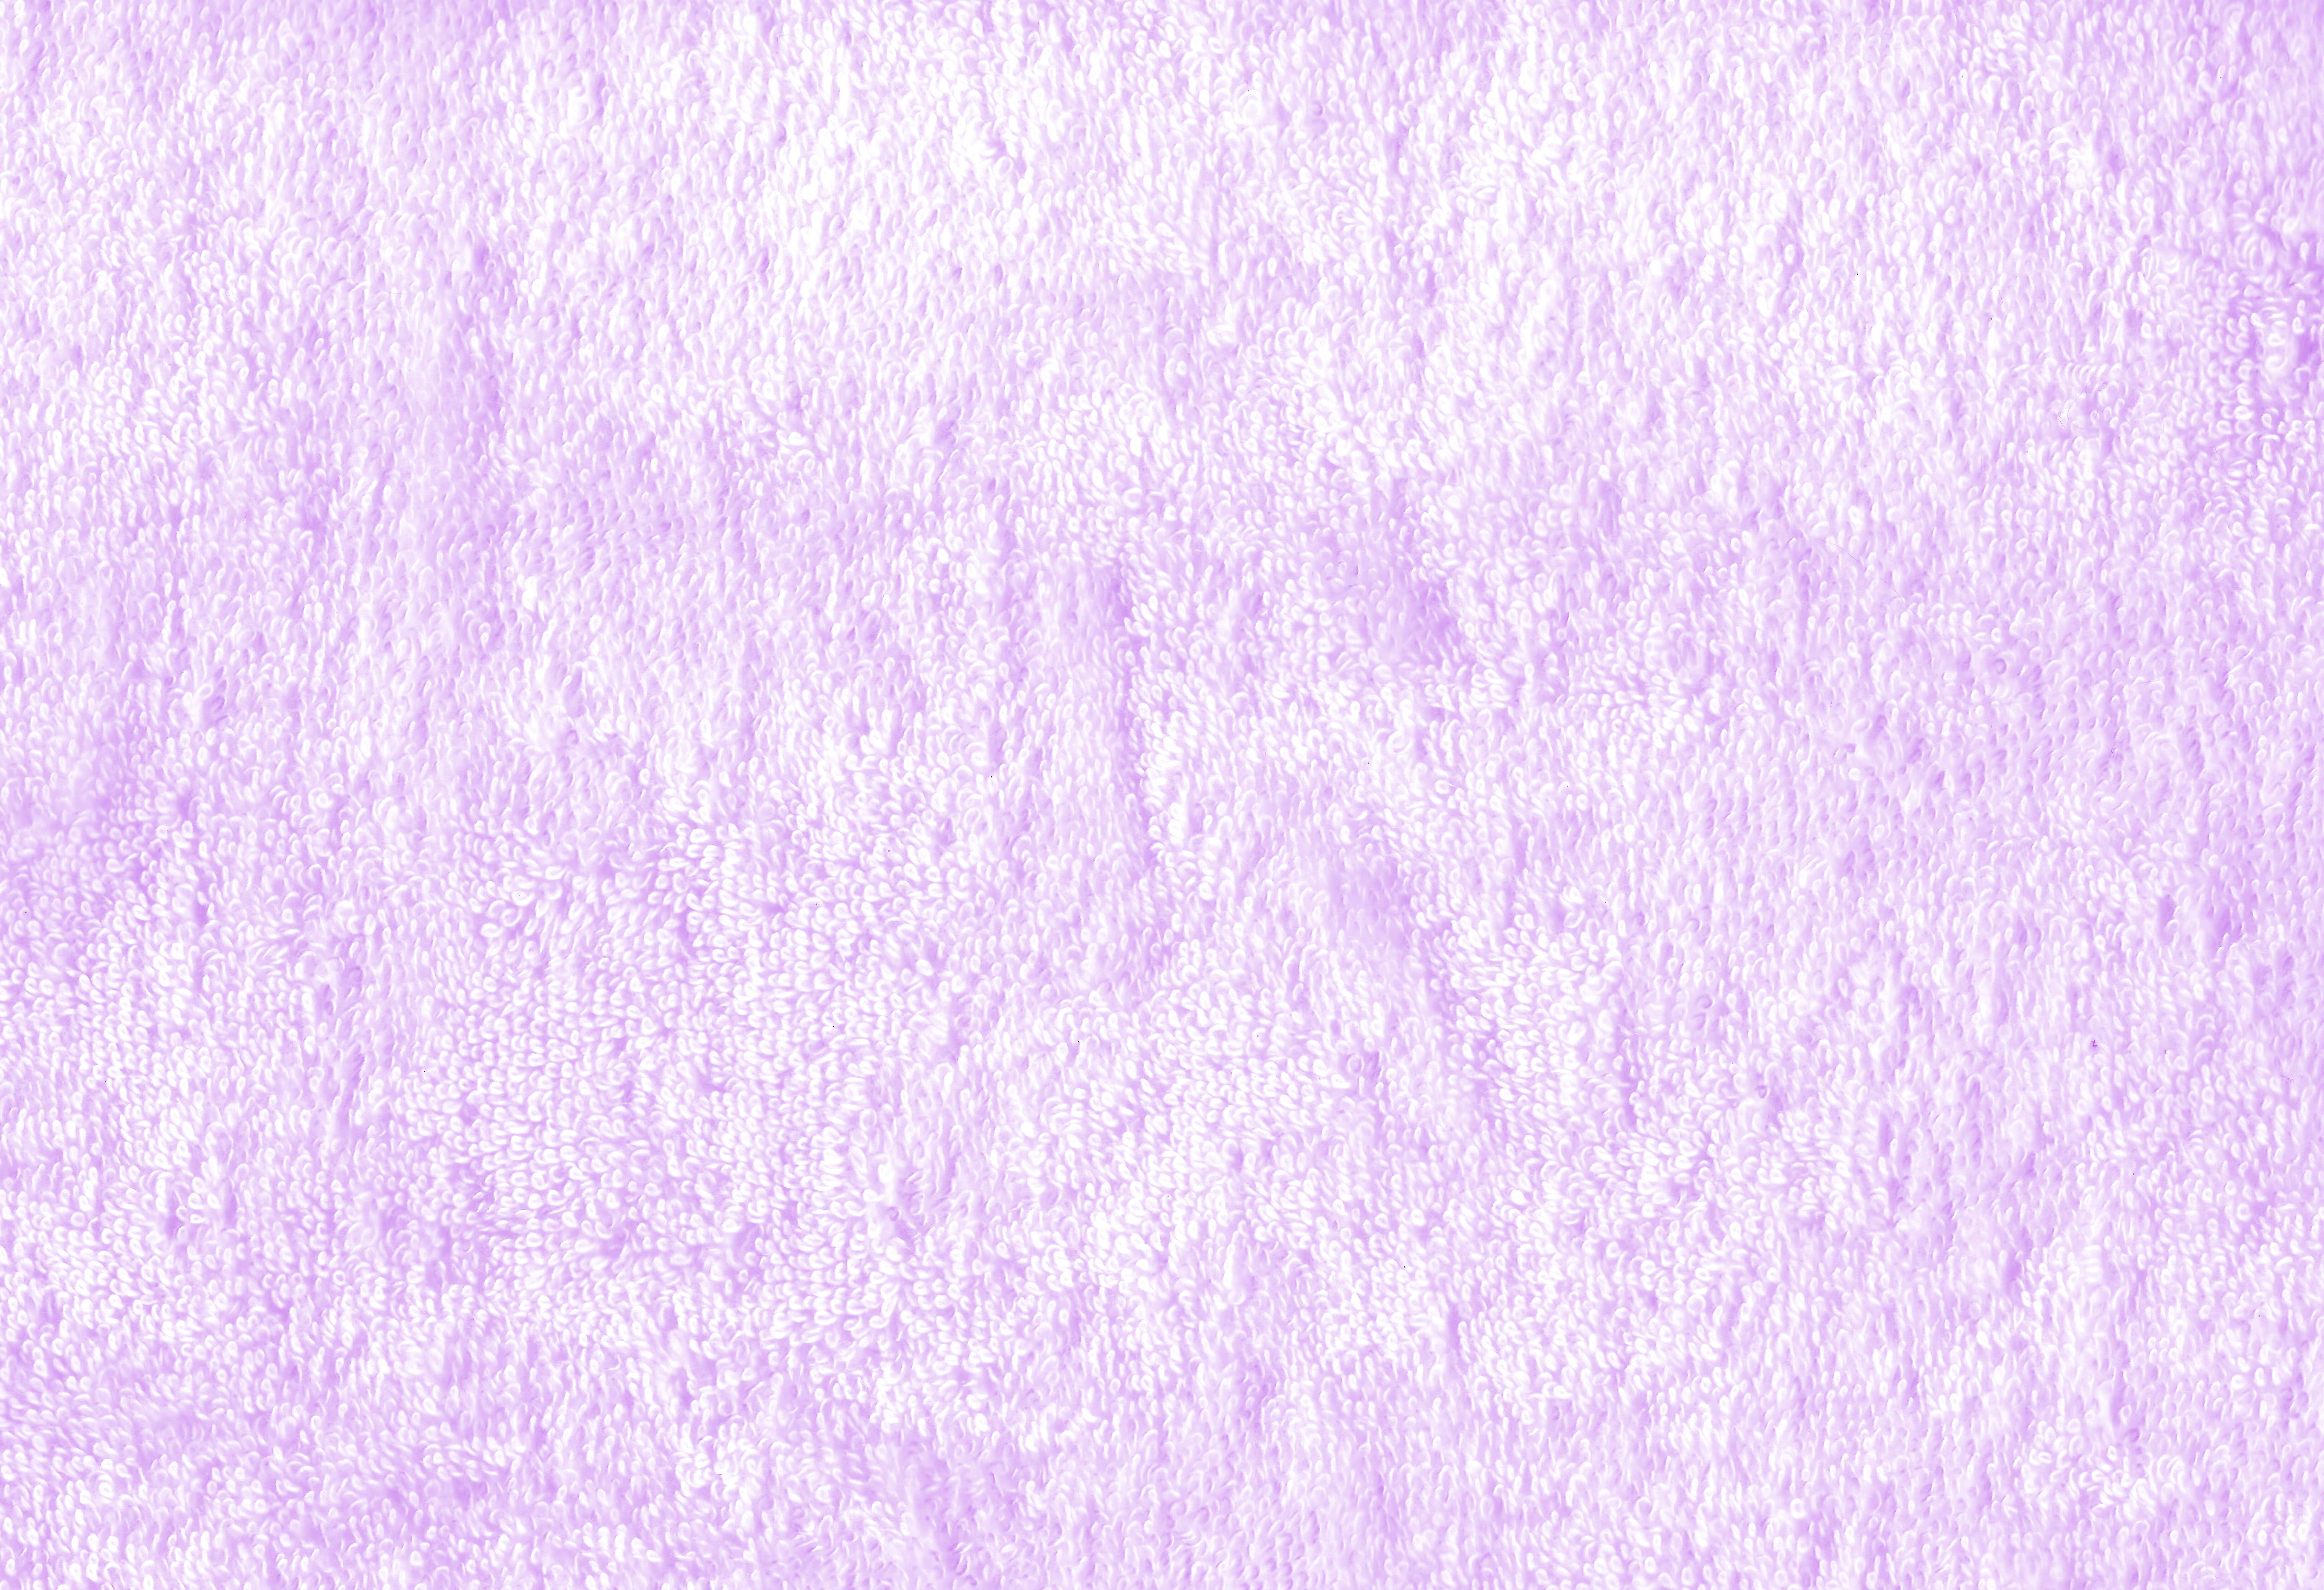 Lavender Terry Cloth Towel Texture Picture Free